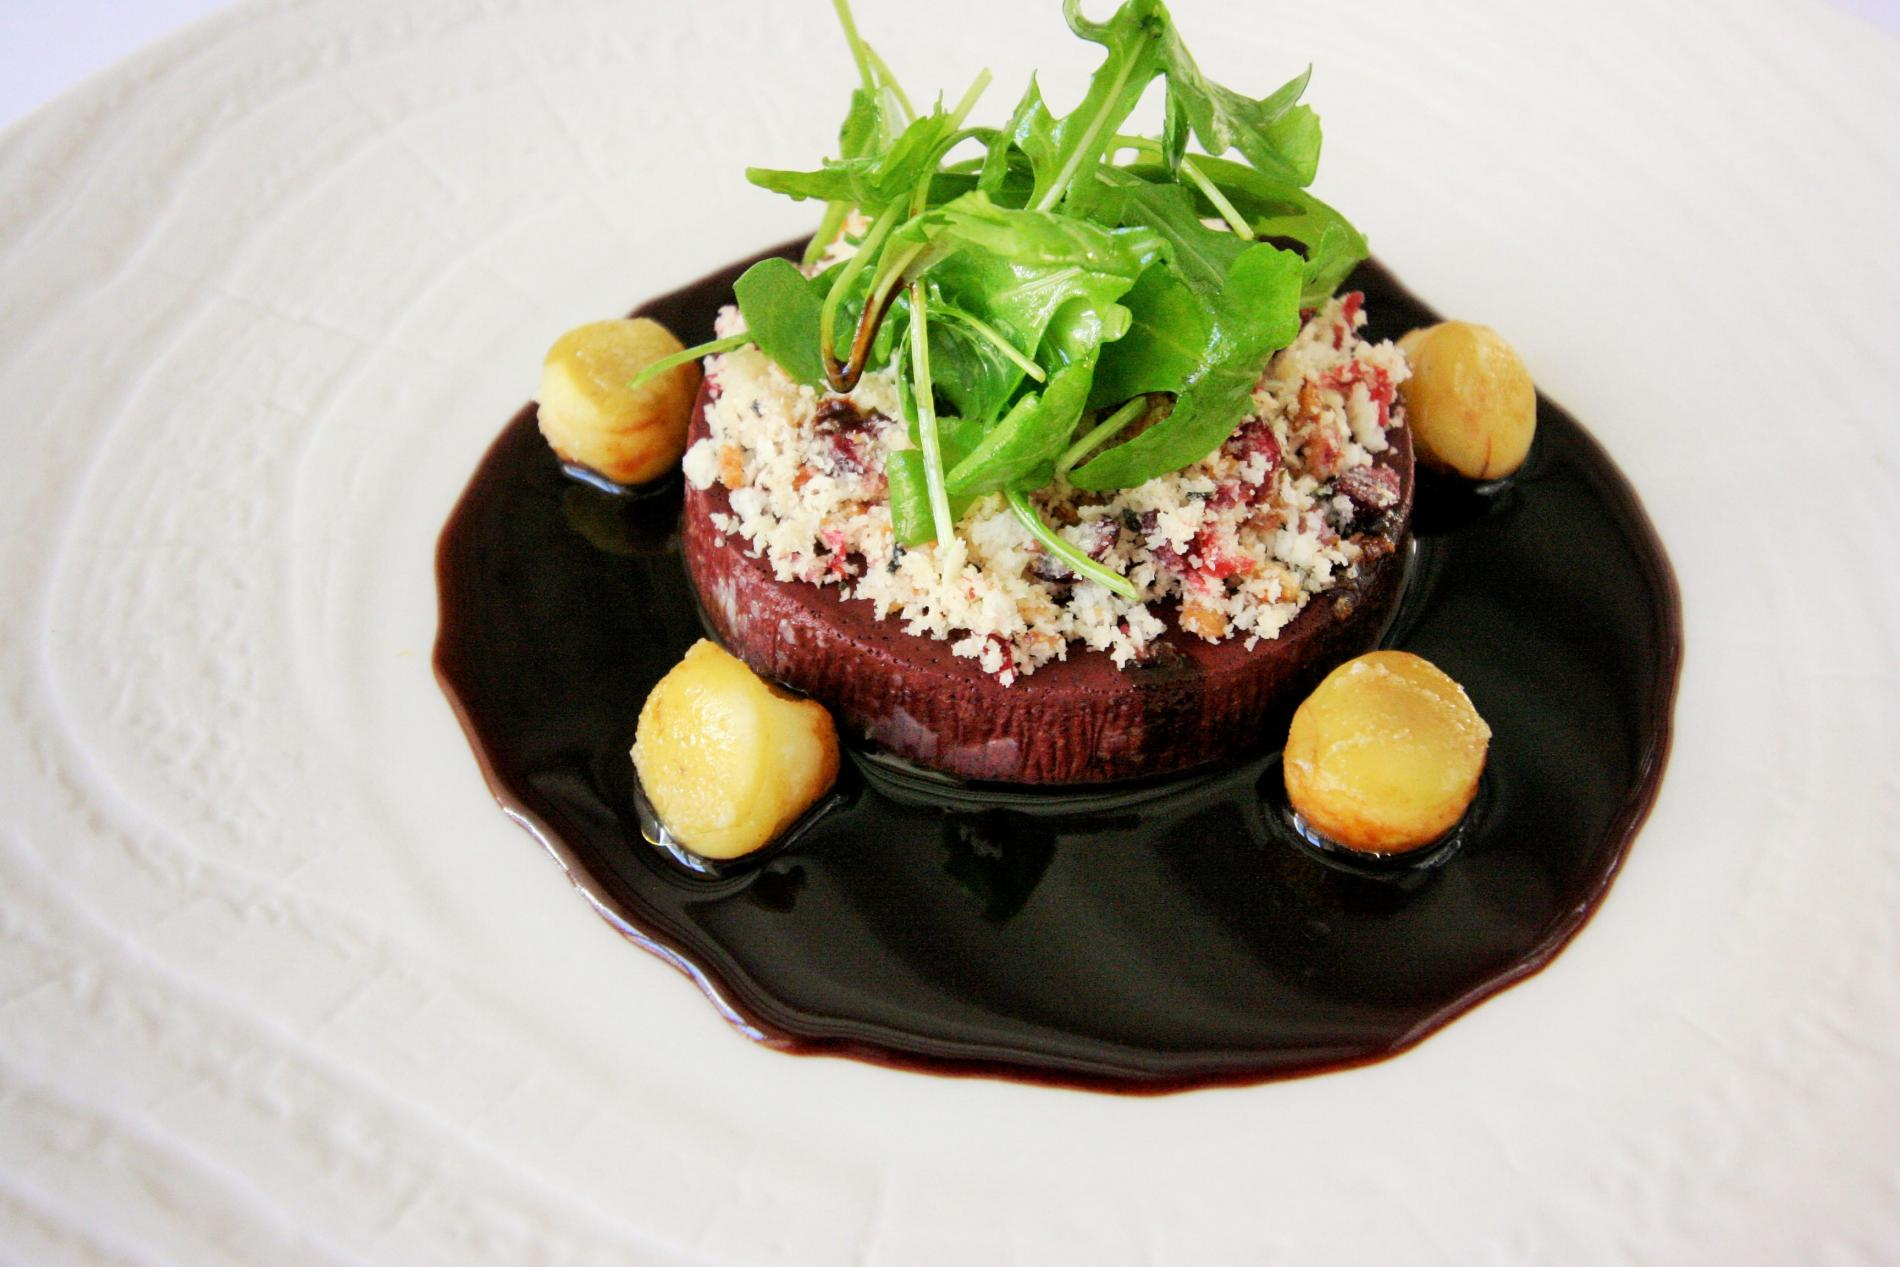 Mortagne's black pudding